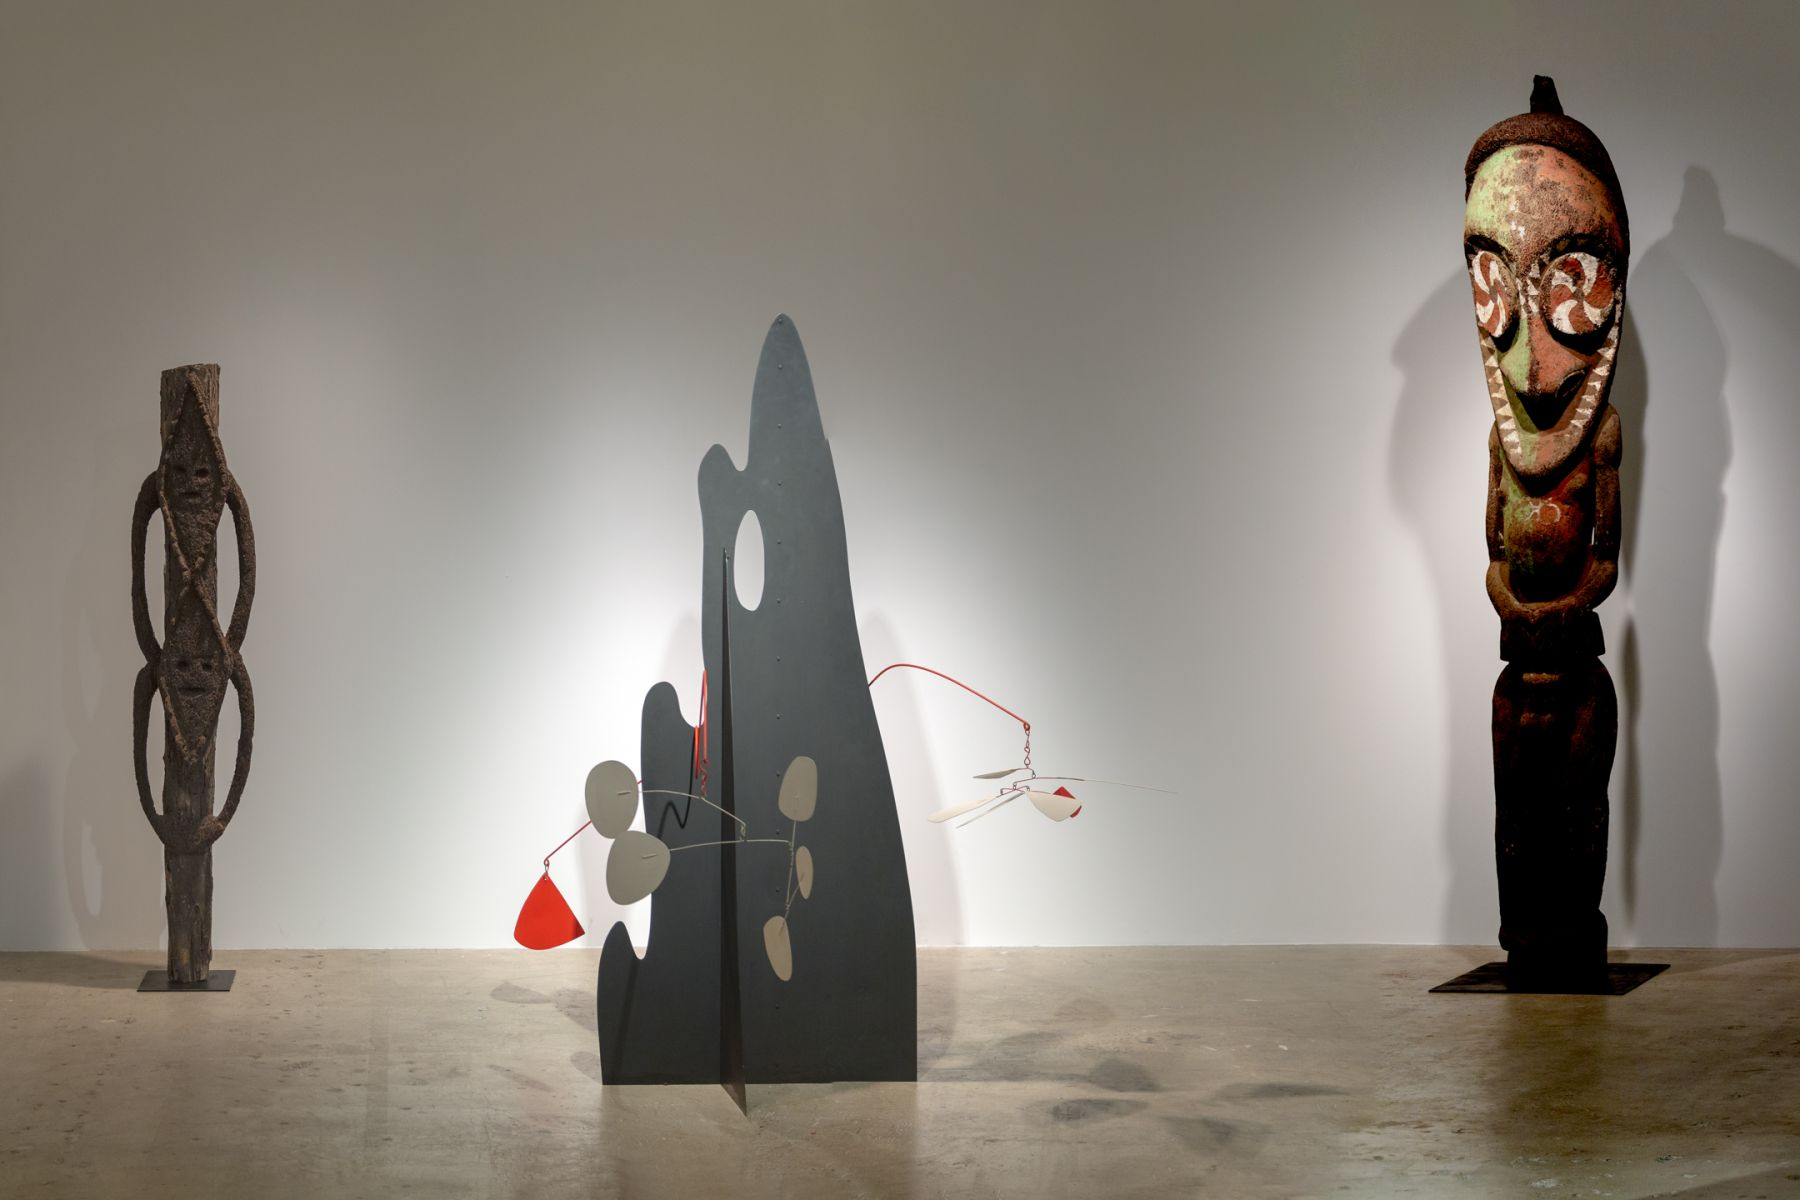 Calder Crags + Vanuatu Totems from the Collection of Wayne Heathcote, Installation Image 6